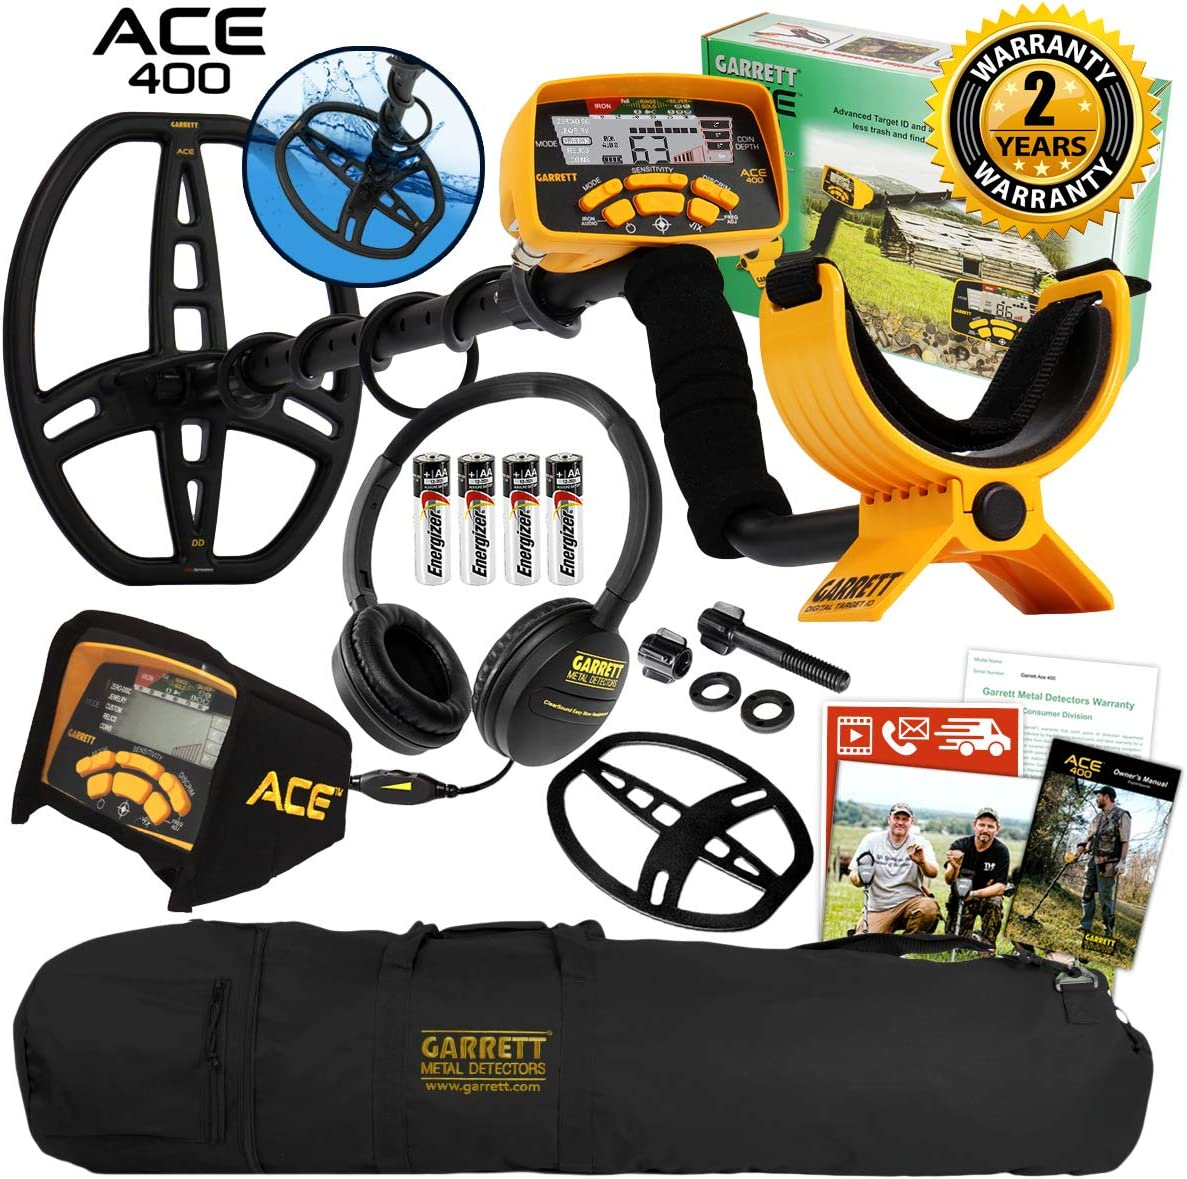 Garrett ACE 400 Metal Detector with DD Waterproof Search Coil and Carry Bag Pack 1